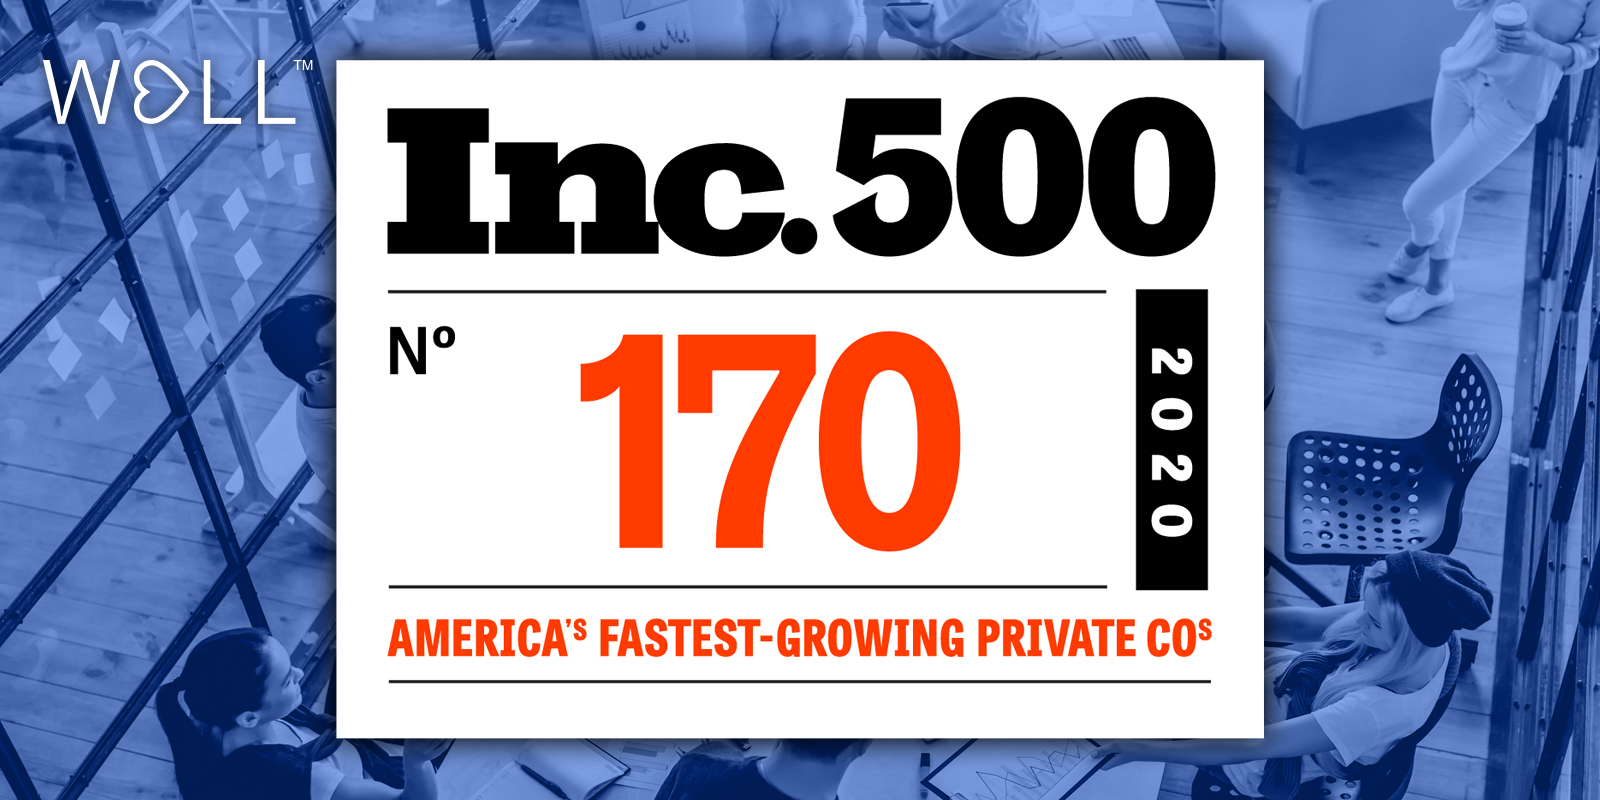 WELL Health makes Inc. 500 list of fastest growing private companies